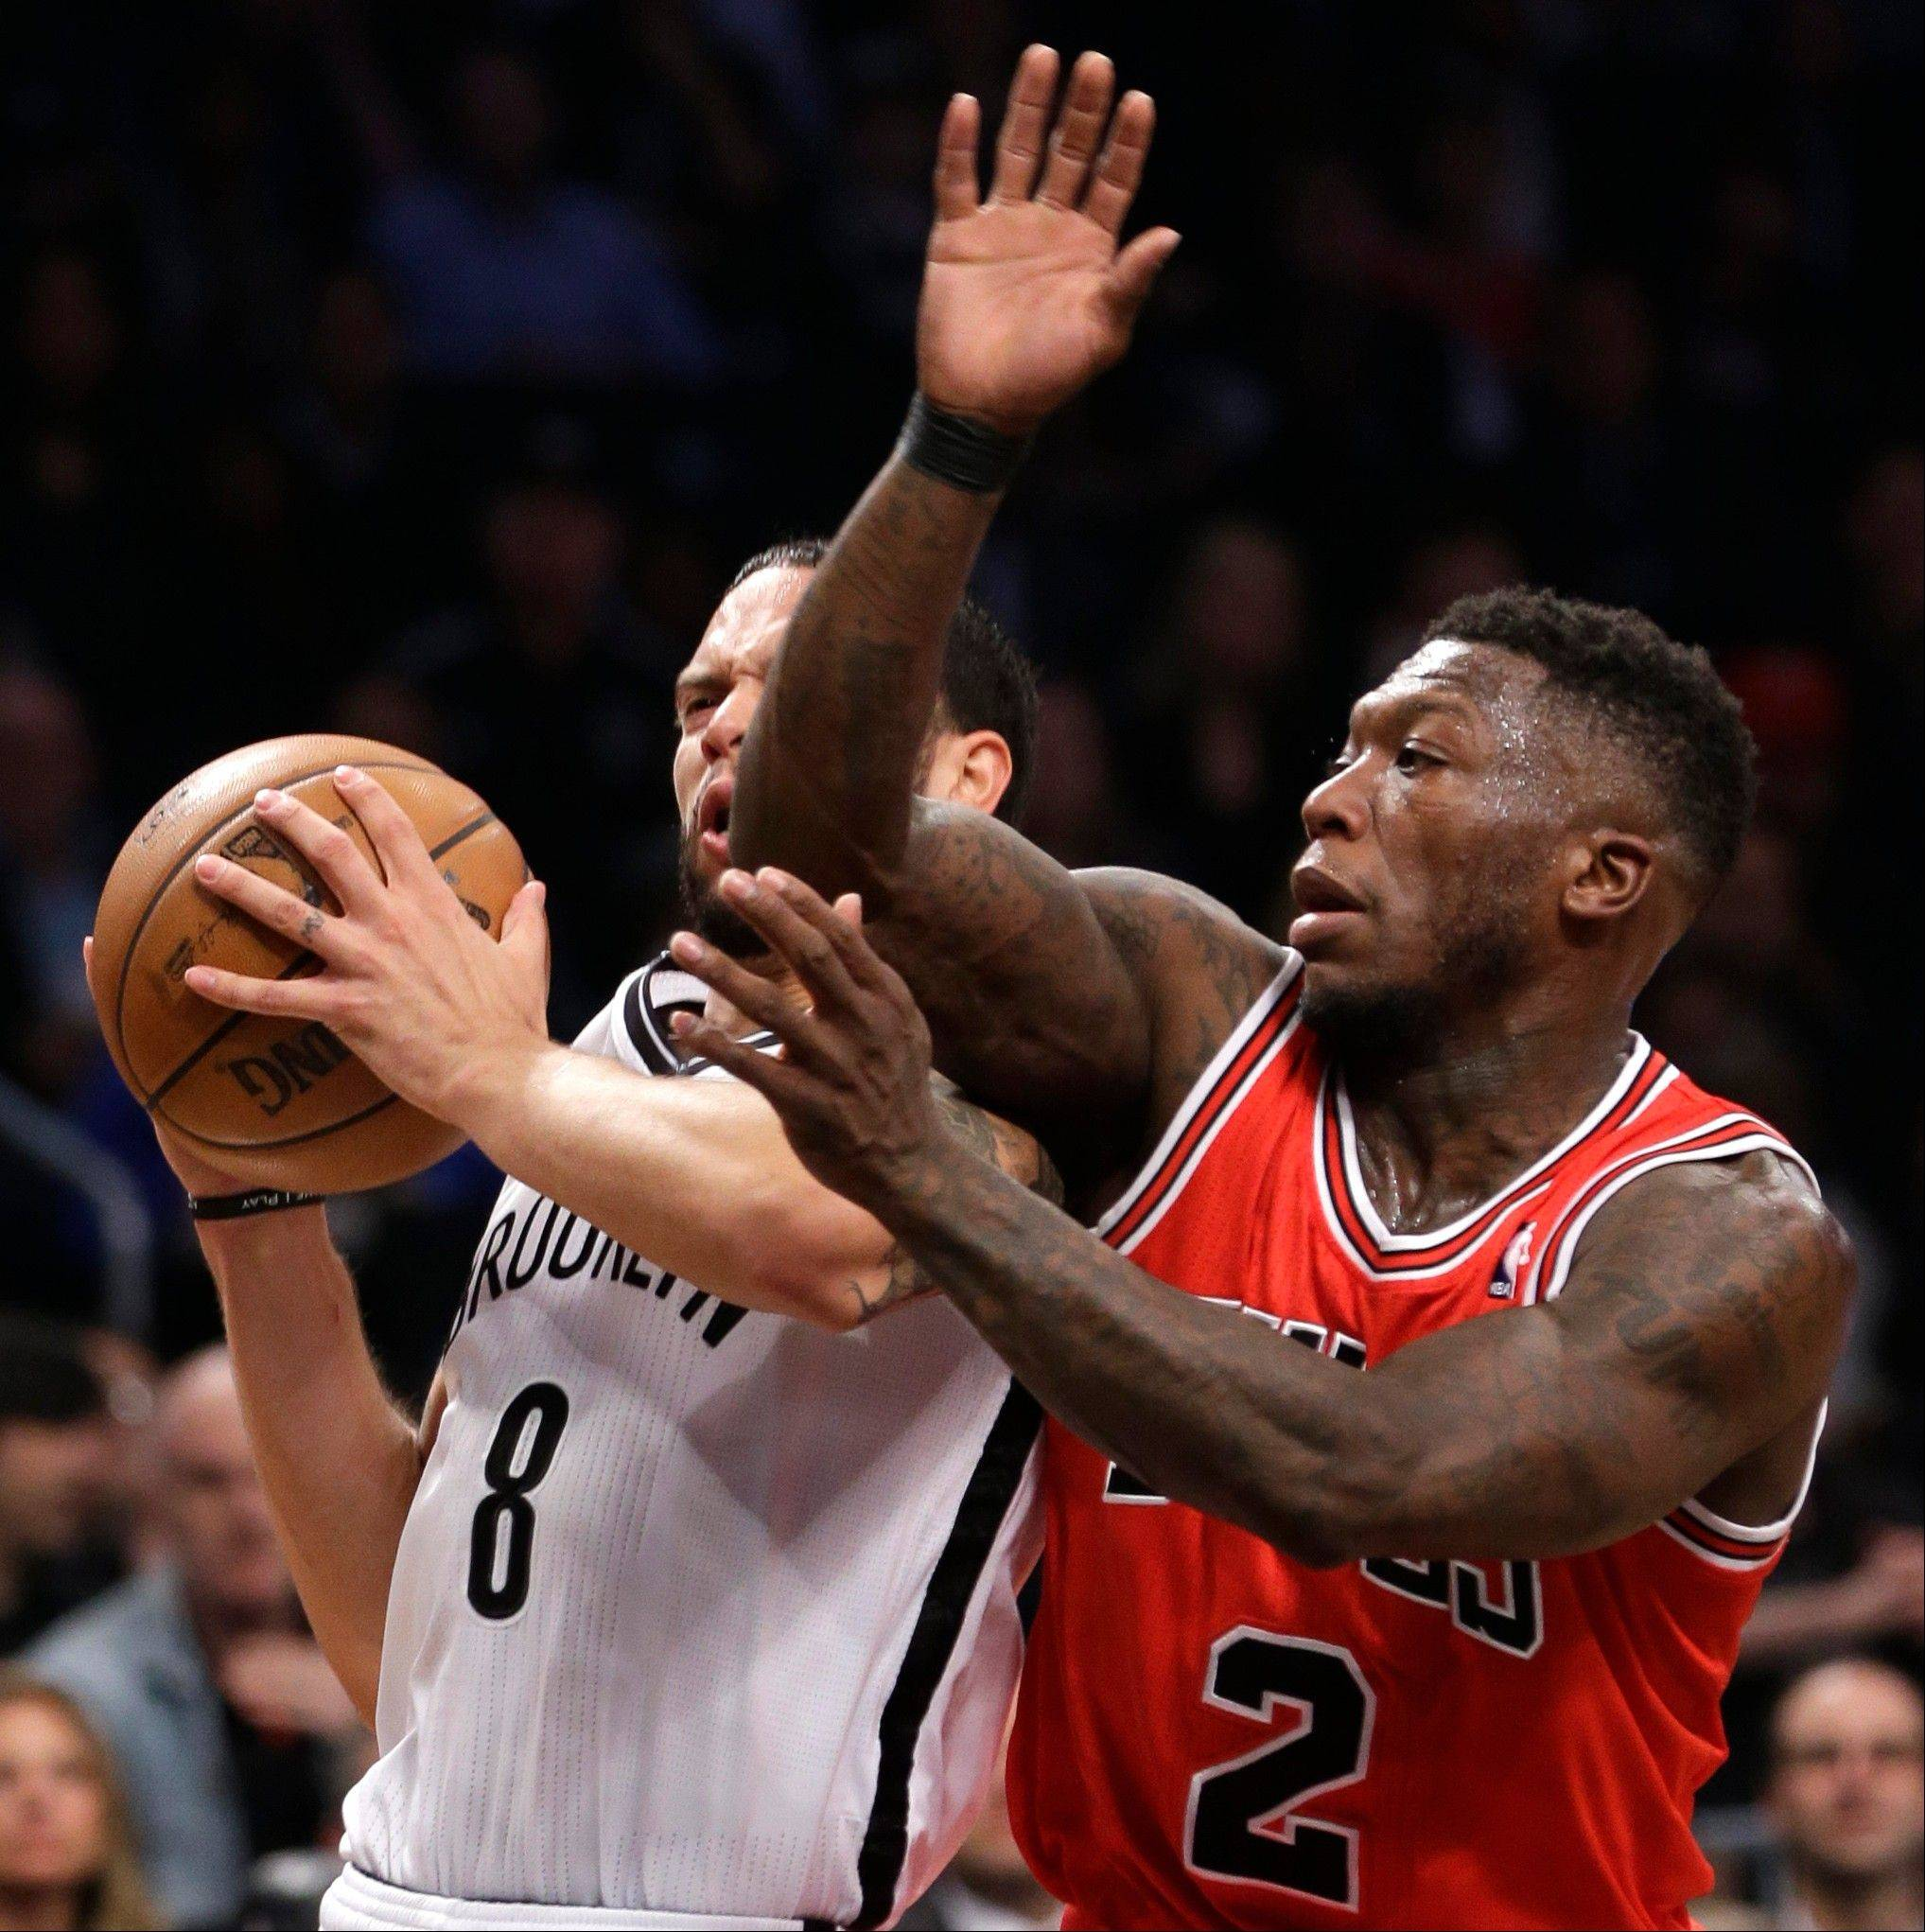 Brooklyn Nets guard Deron Williams collides with Nate Robinson as he drives toward the basket in the first half of Game 5 in New York on Monday.